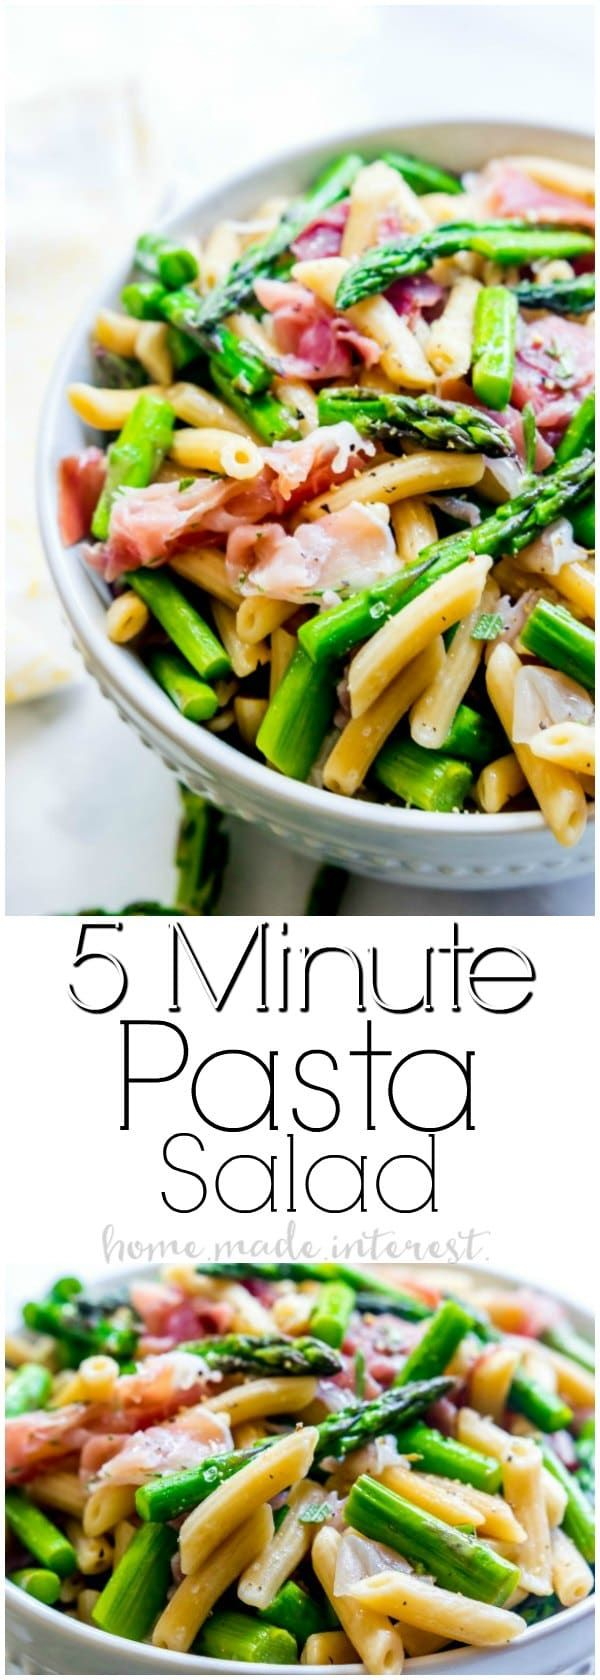 Easy Italian Pasta Salad | This light and fresh pasta salad recipe is made with salty prosciutto and steam asparagus tossed in a homemade vinaigrette. This healthy pasta salad is made in 5 minutes for a quick and easy lunch recipe or a quick and easy dinner recipe.  @barillaus #ReadyPasta AD